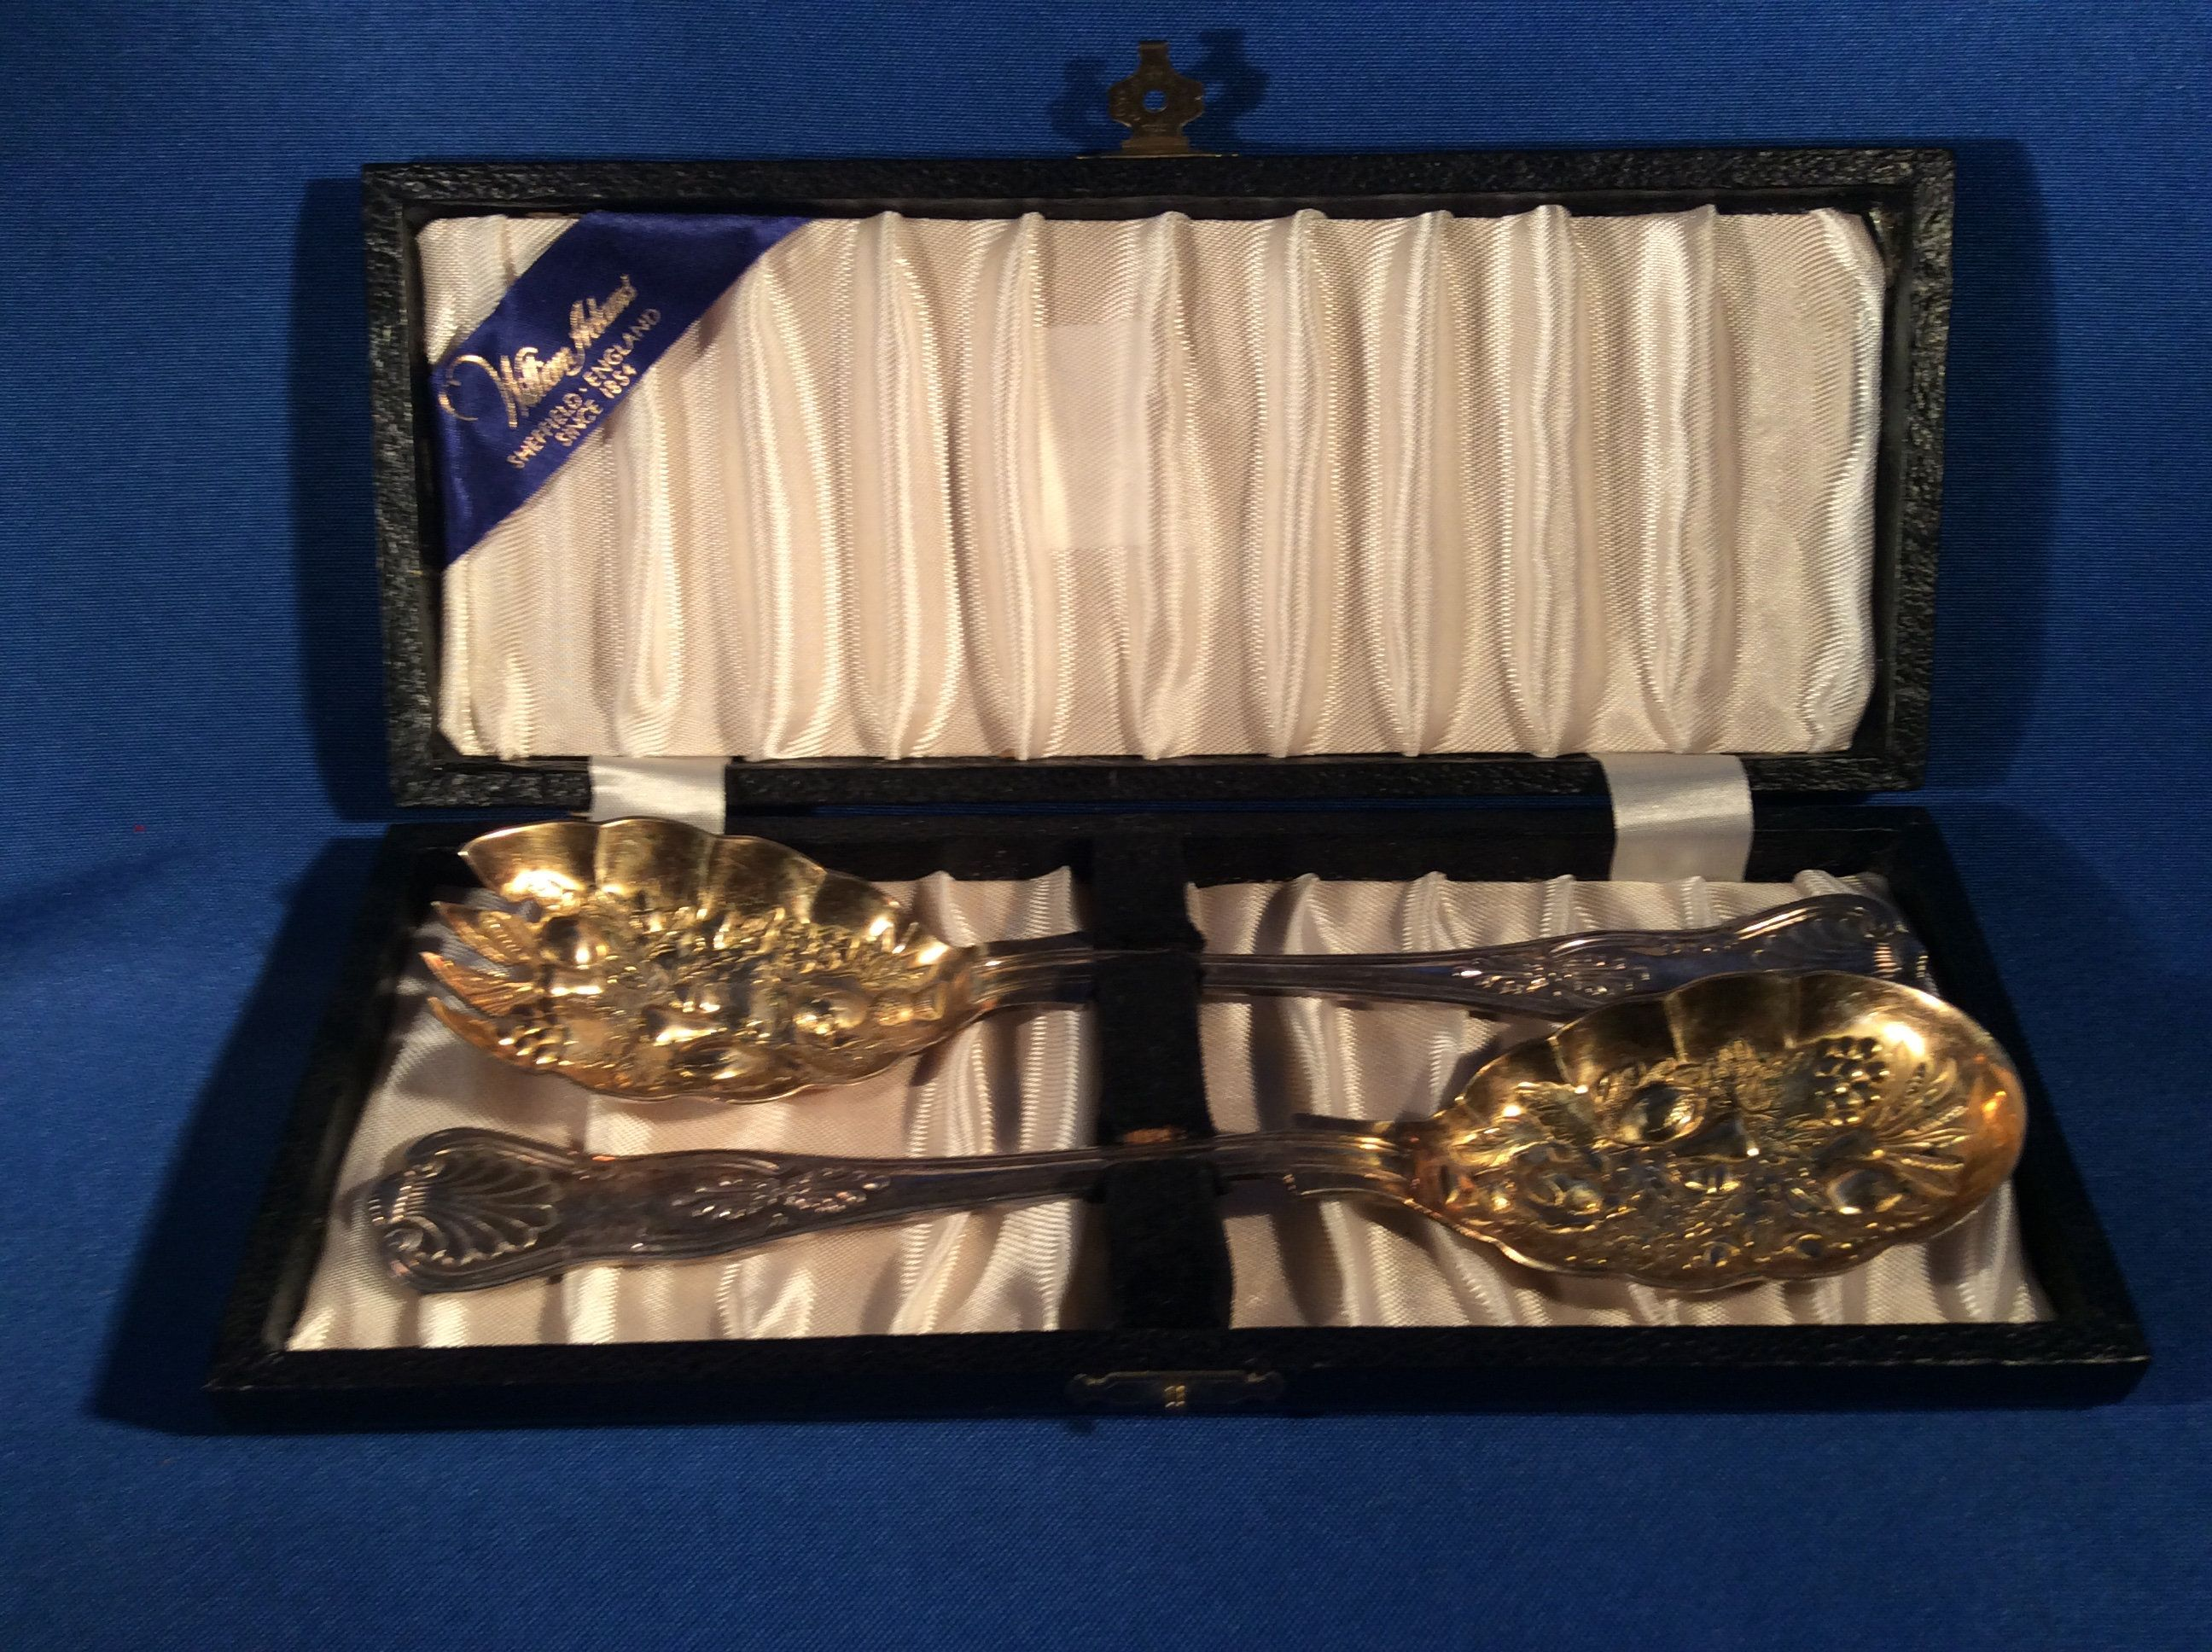 Vintage English Sheffield Made Unfinished Windsor Small Tea Spoon Cutlery Silverware Flatware PRICED INDIVIDUALLY c1960/'s  English Shop